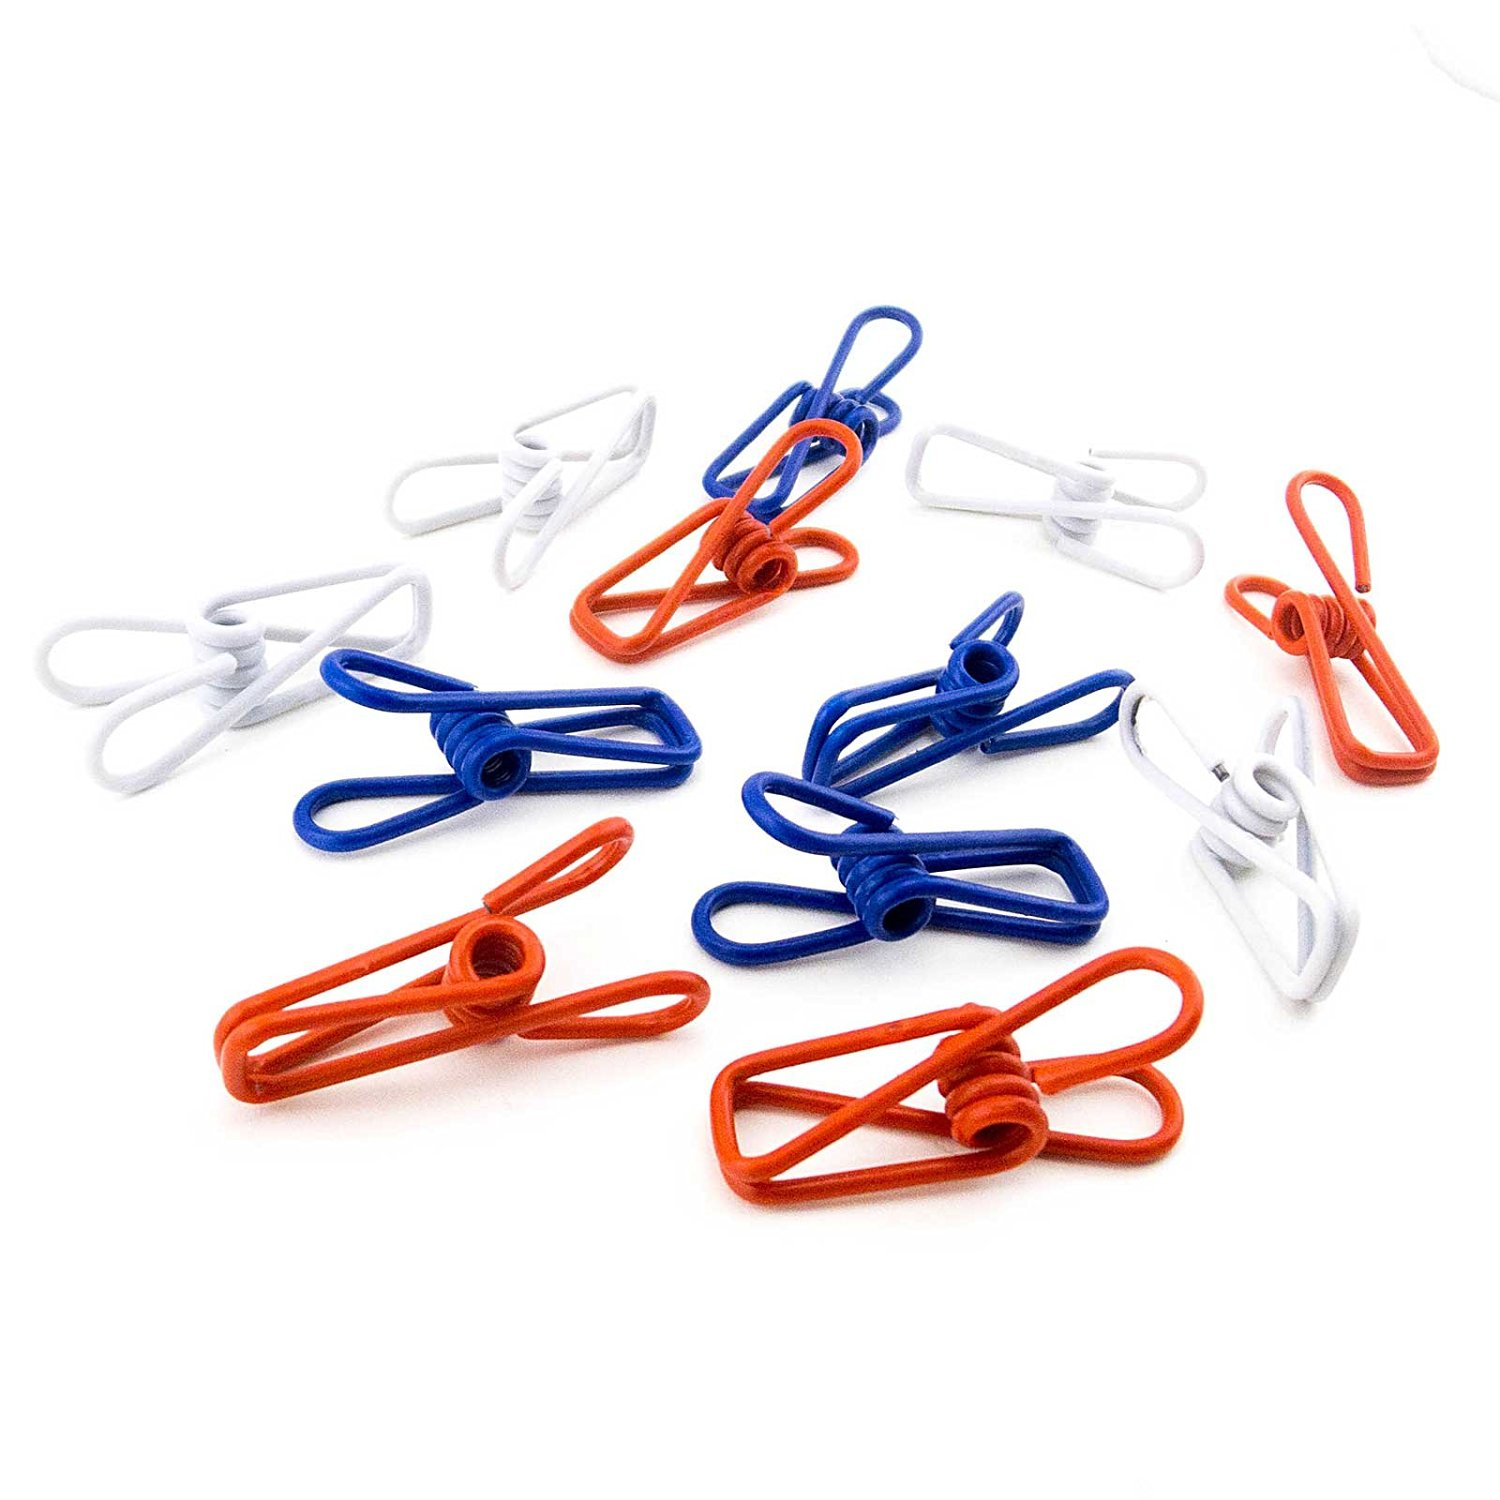 Buy Adorox Colorful Multi-purpose Metal Clips Holders Spring Clips ...